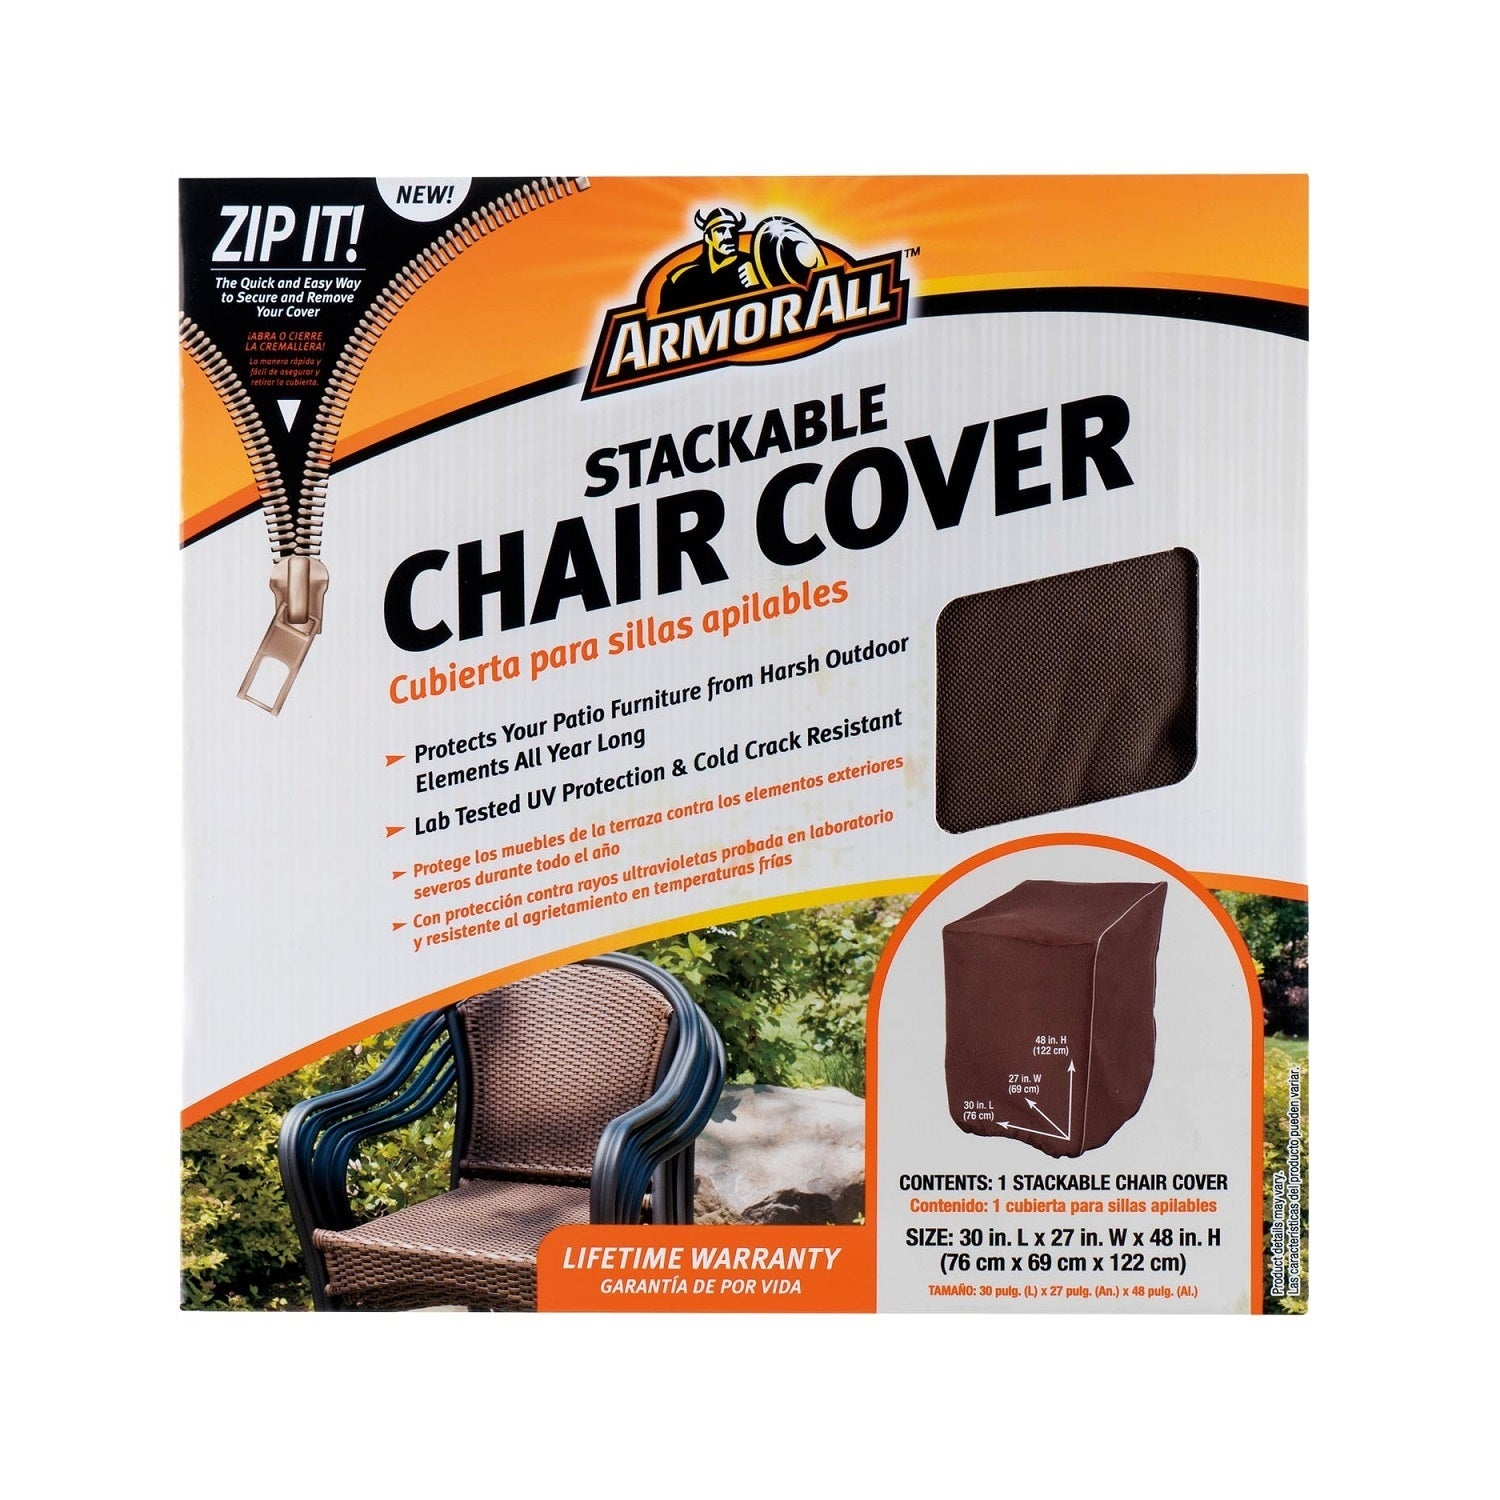 Surprising Armor All Stackable Chair Cover Alphanode Cool Chair Designs And Ideas Alphanodeonline